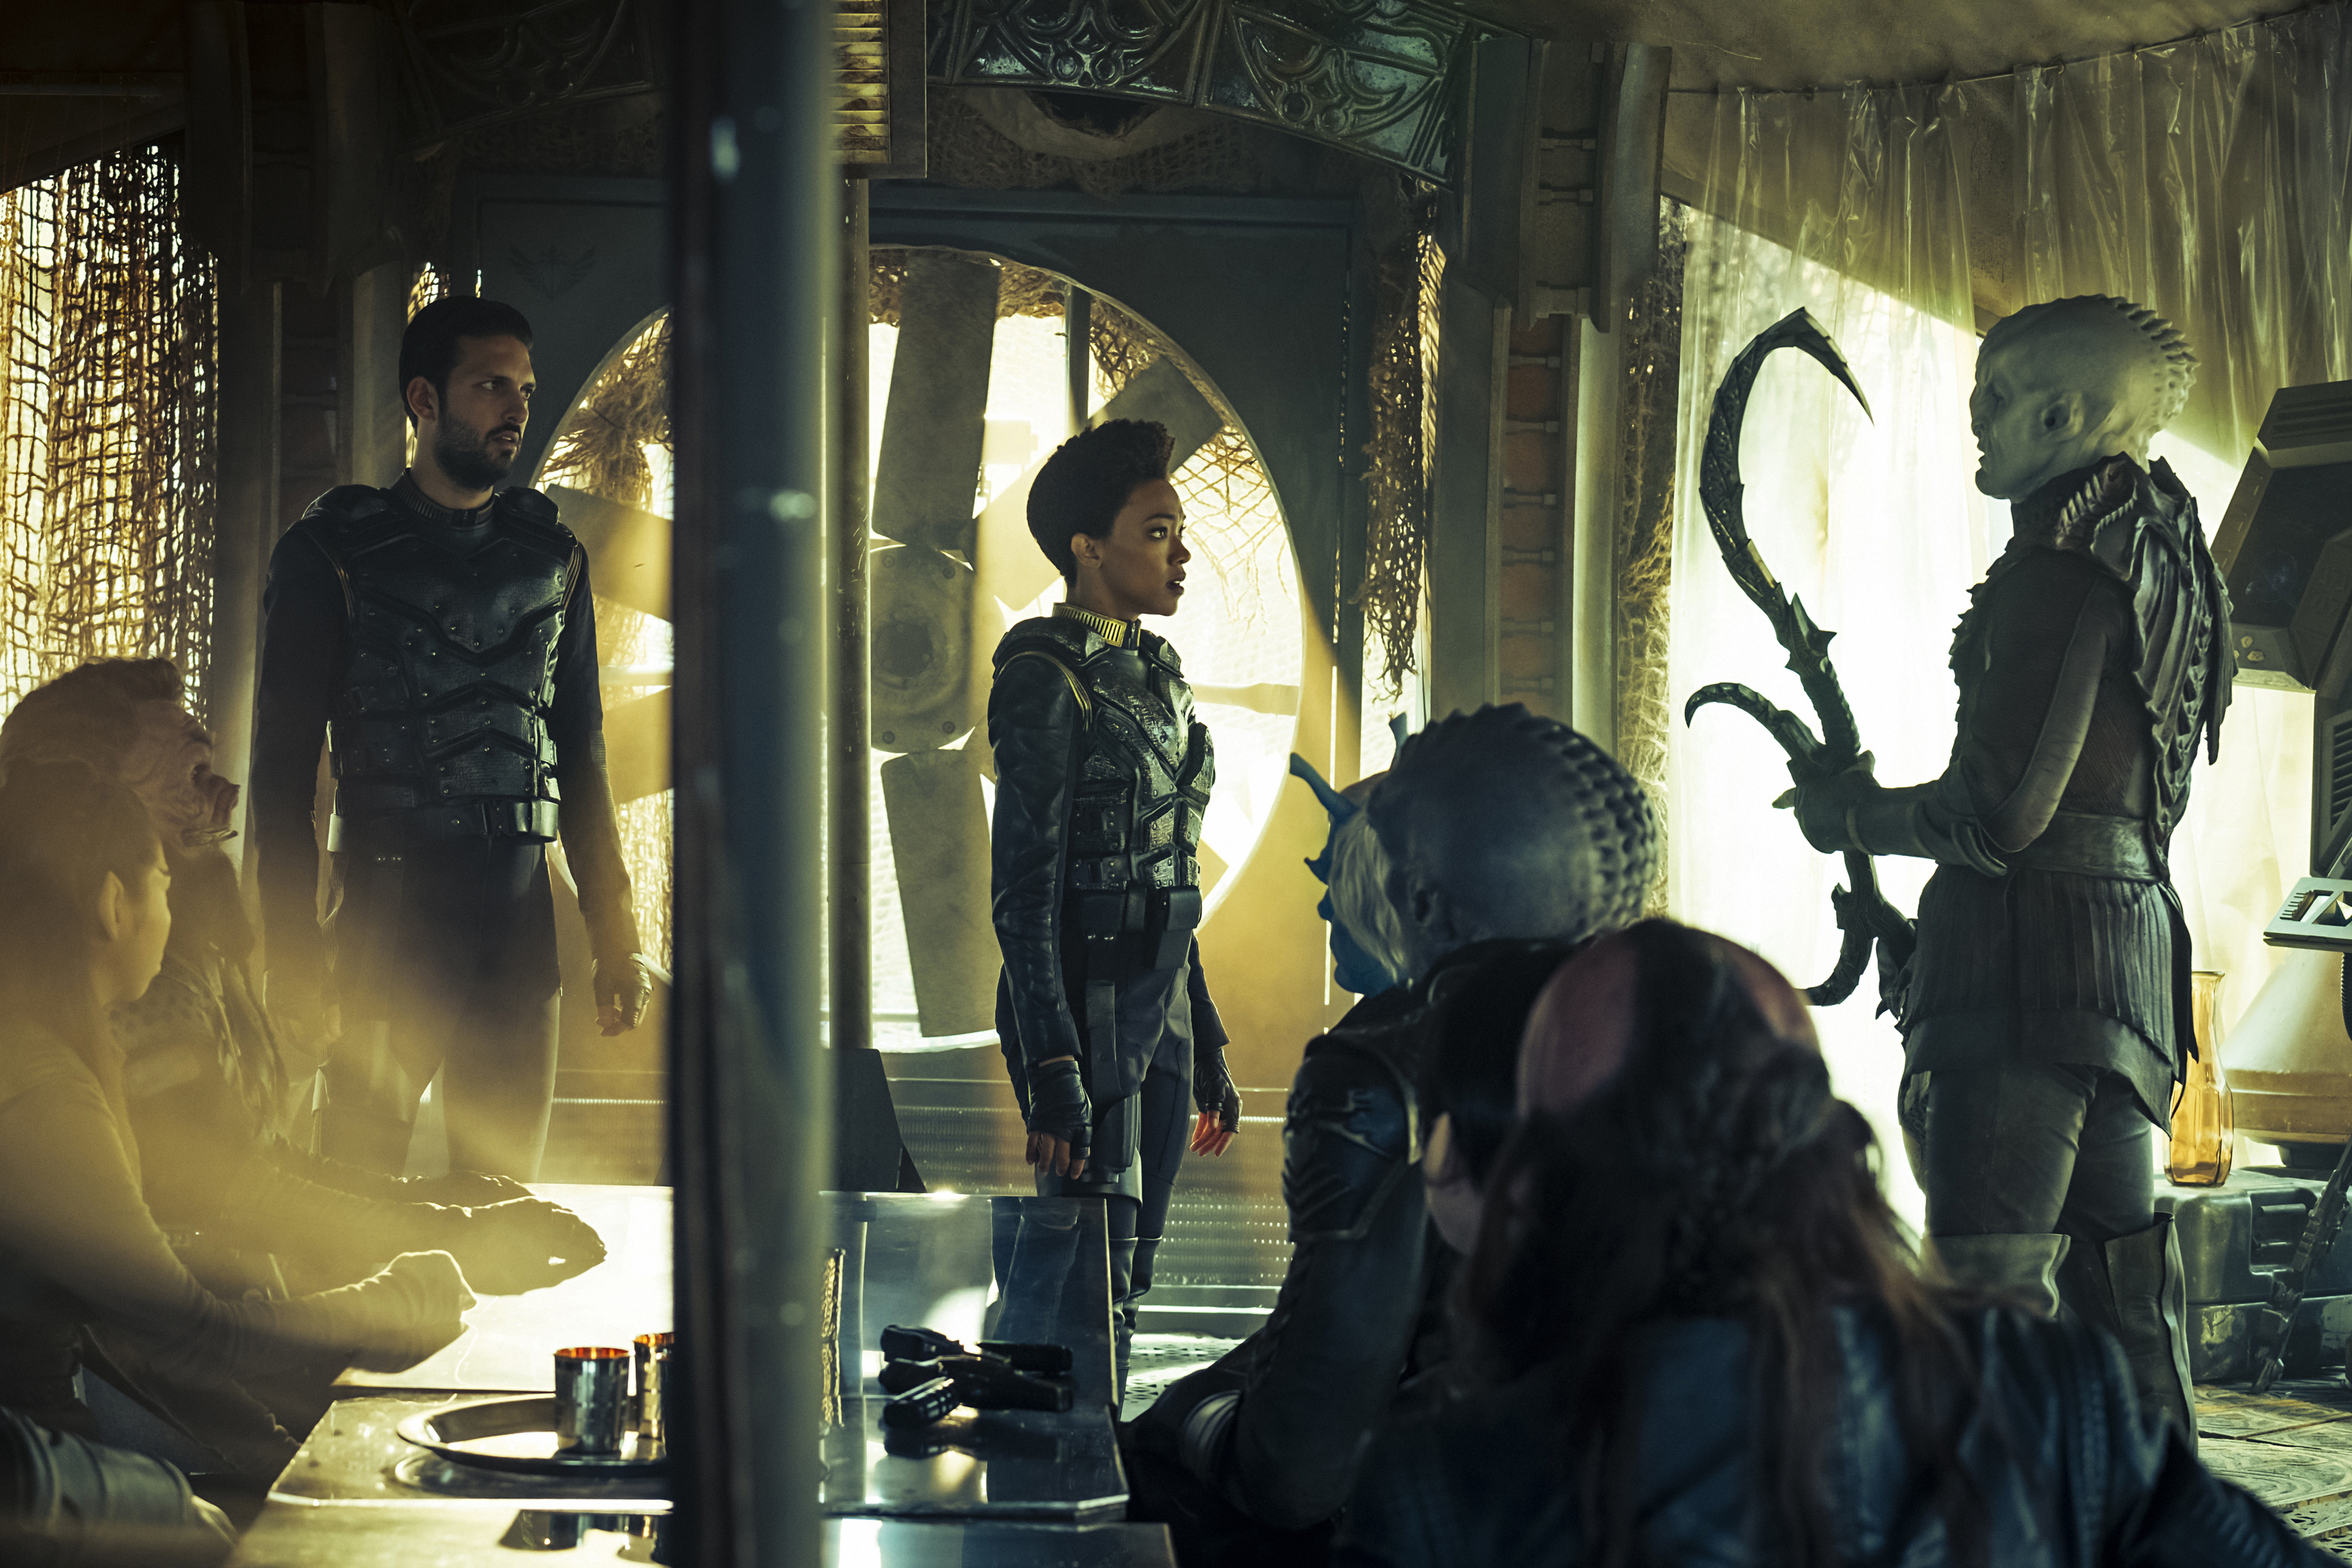 """The Wolf Inside""-- Episode 111 -- Coverage of the CBS All Access series STAR TREK: DISCOVERY. Photo Cr: Jan Thijs/CBS © 2017 CBS Interactive. All Rights Reserved."